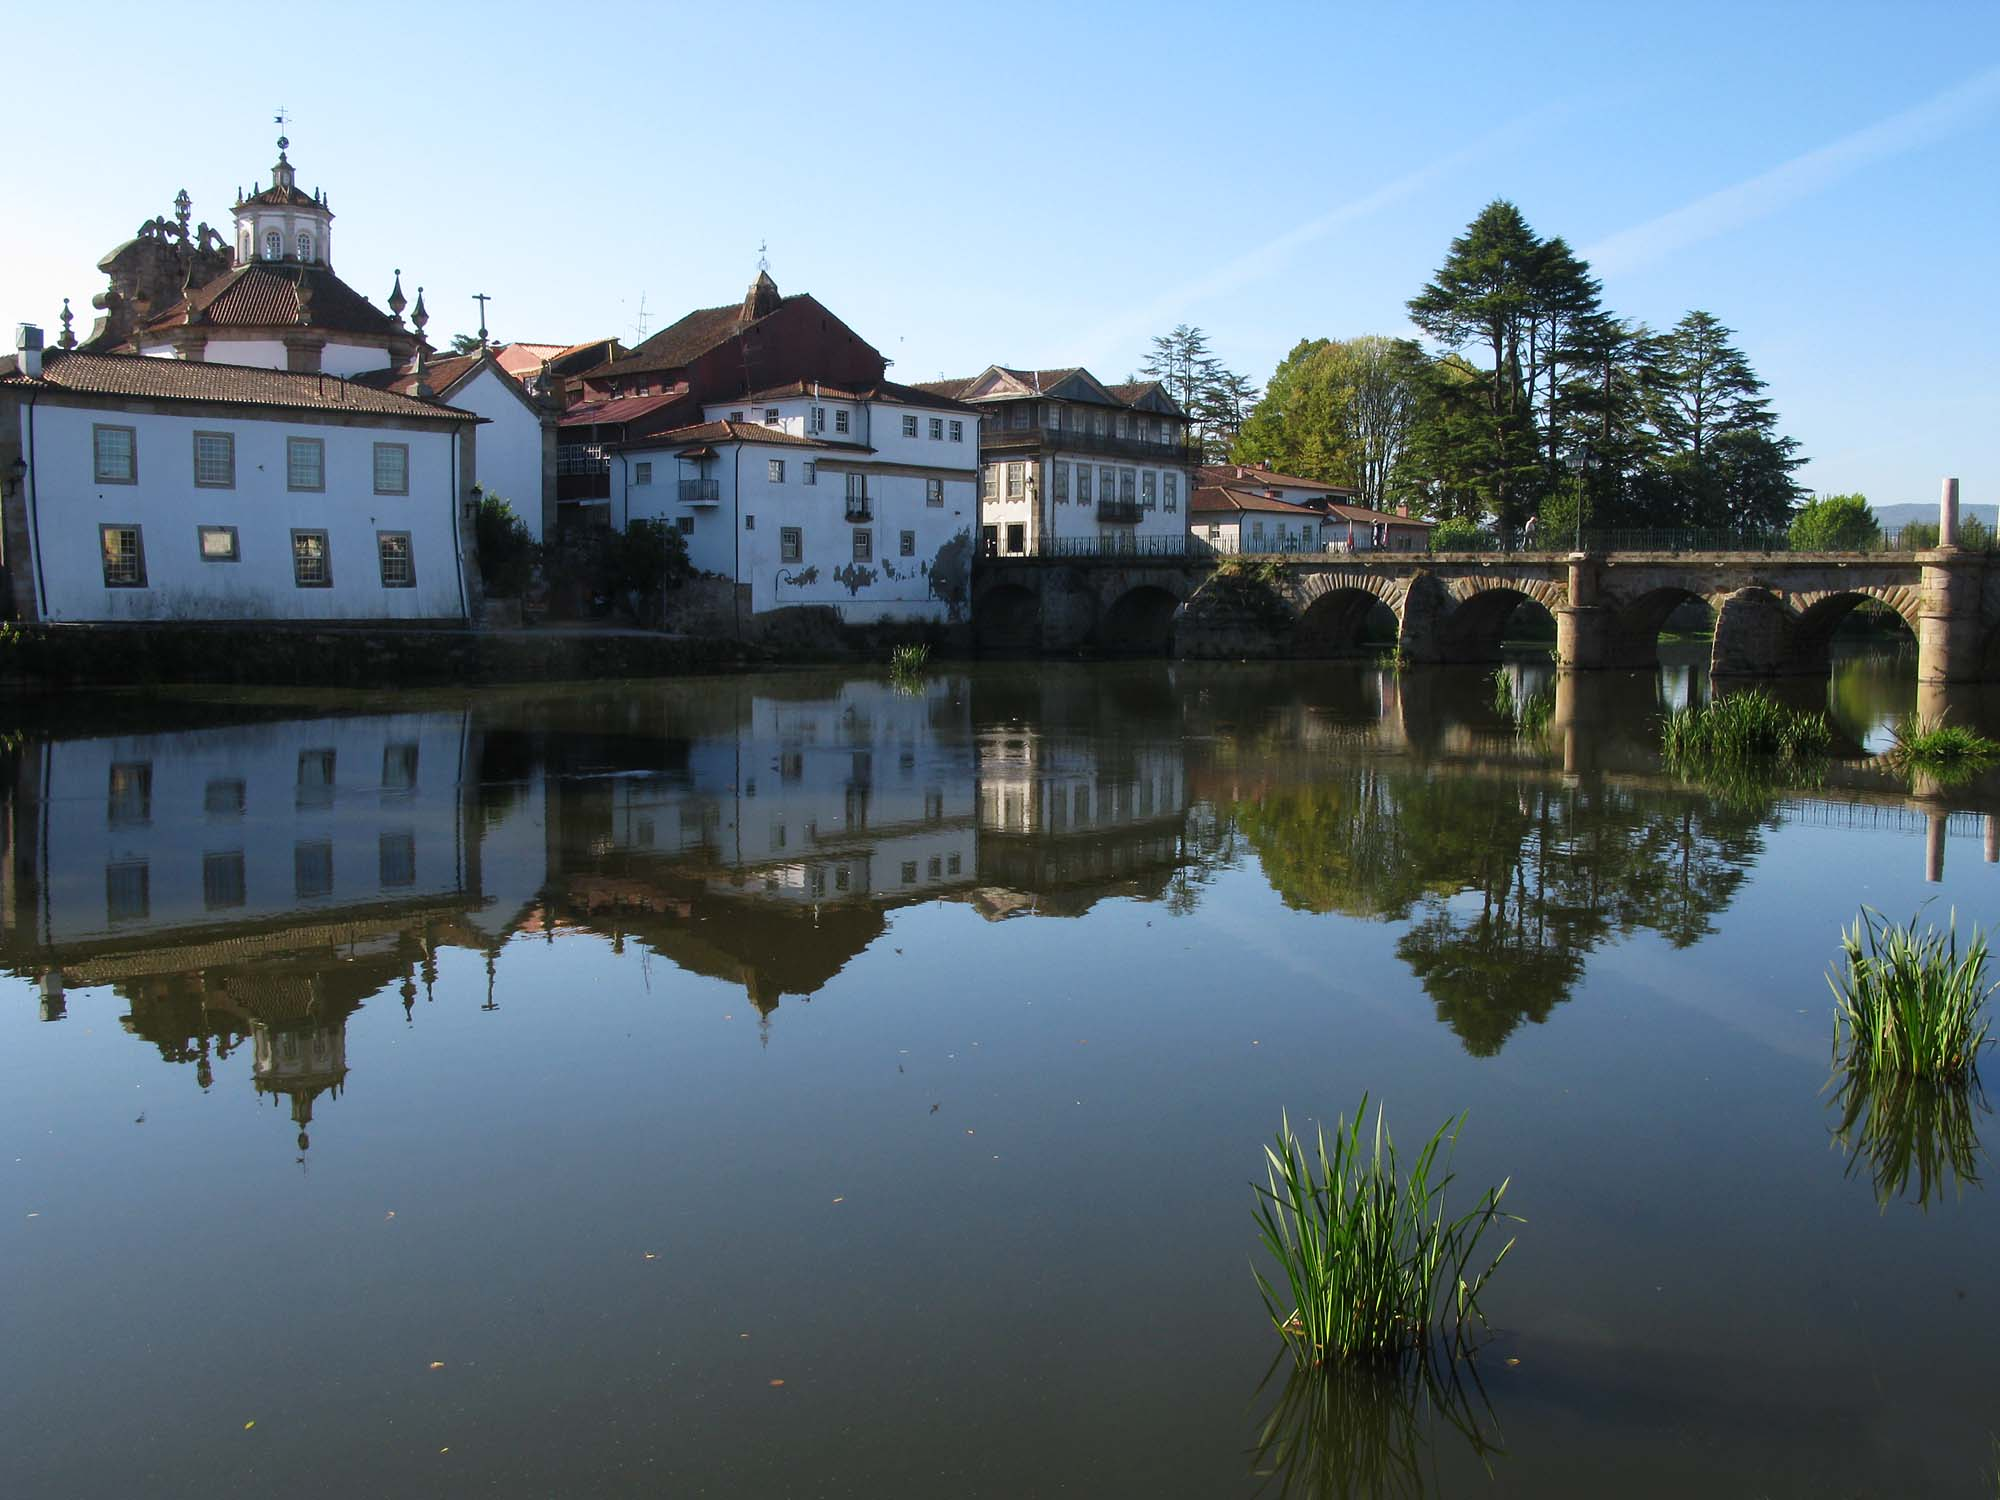 chaves-morgen-fluss-small